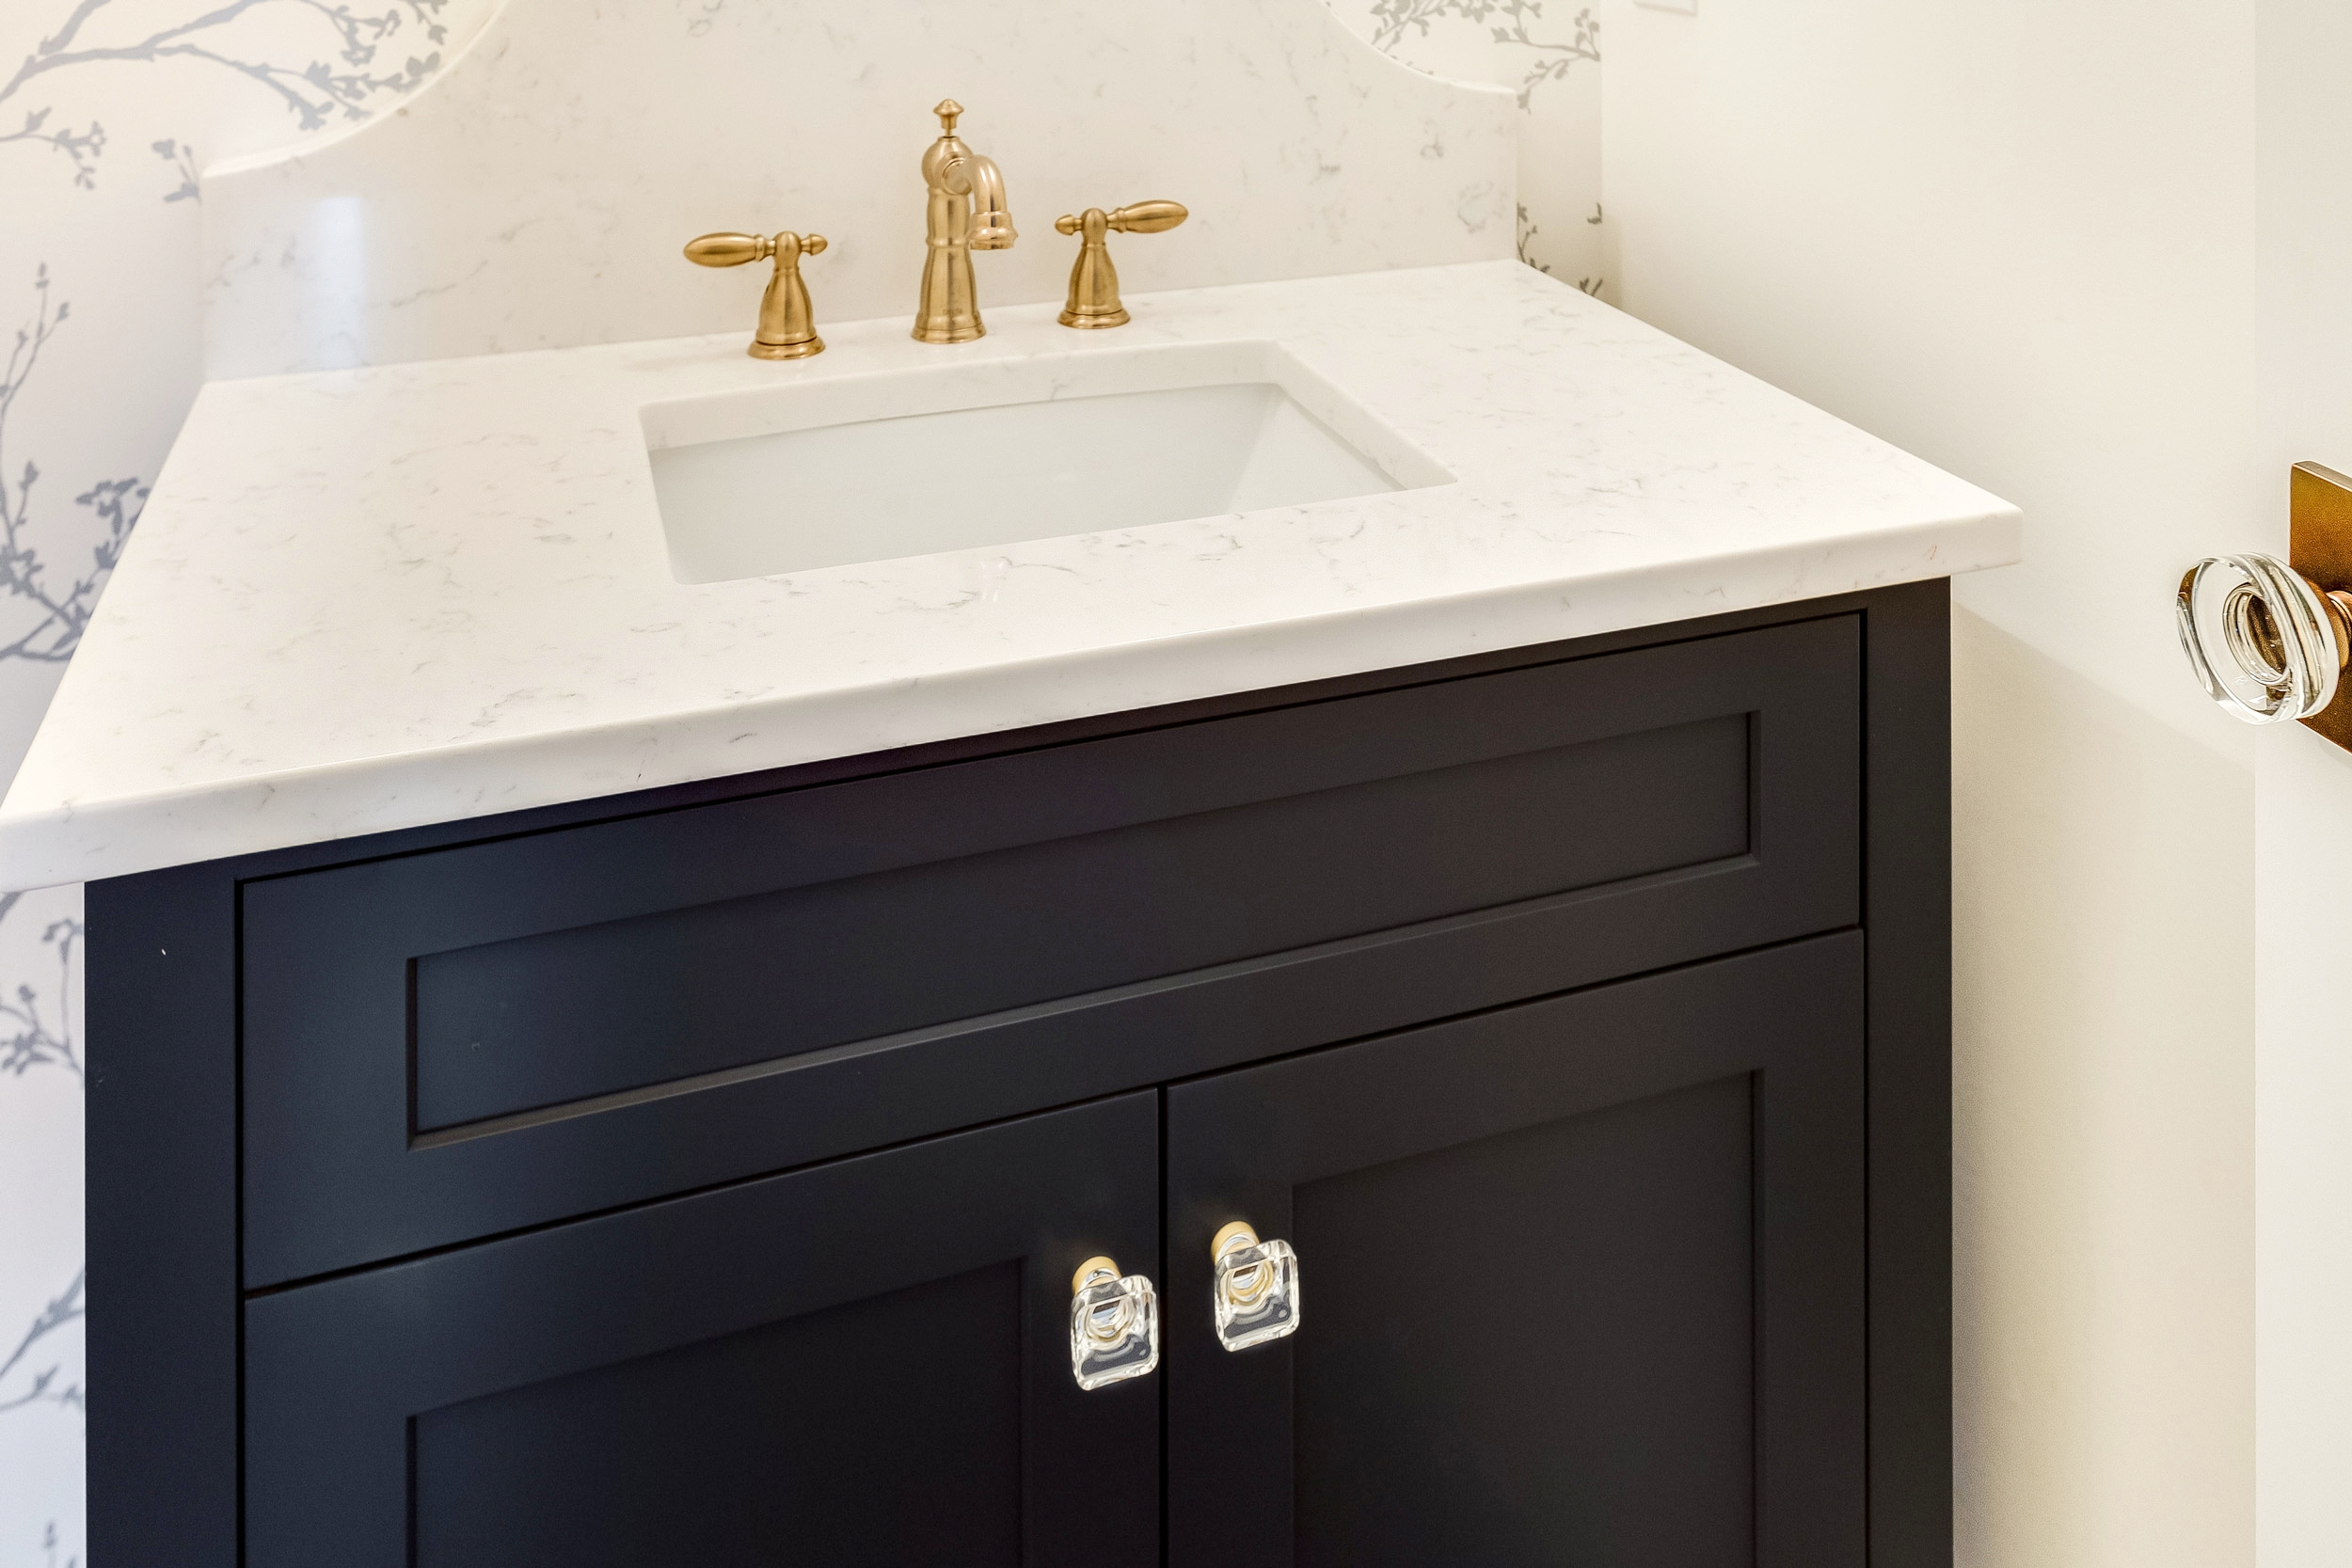 The cabinet is in a Hale Navy color by Shiloh Cabinetry and the cabinet hardware is Intek Crystal knobs.